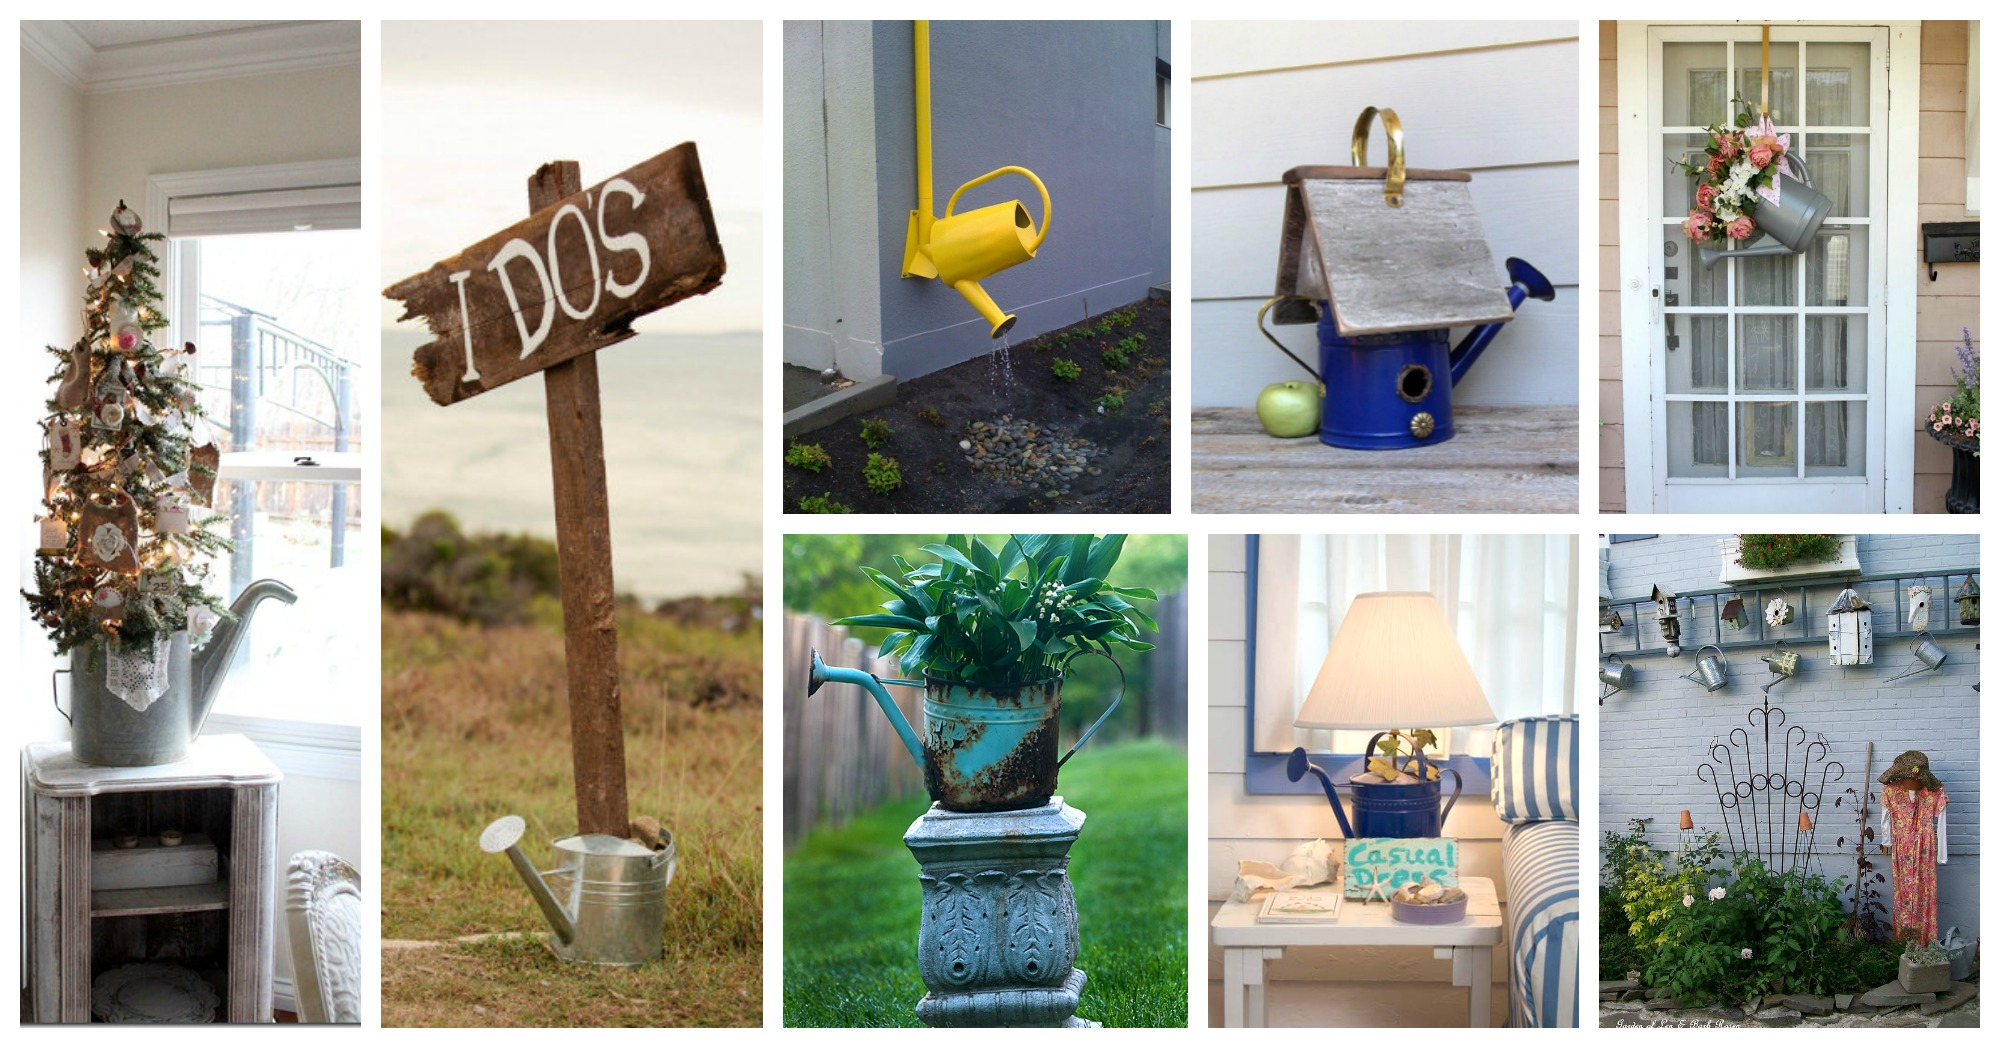 How To Repurpose Watering Cans In A Wonderful Way